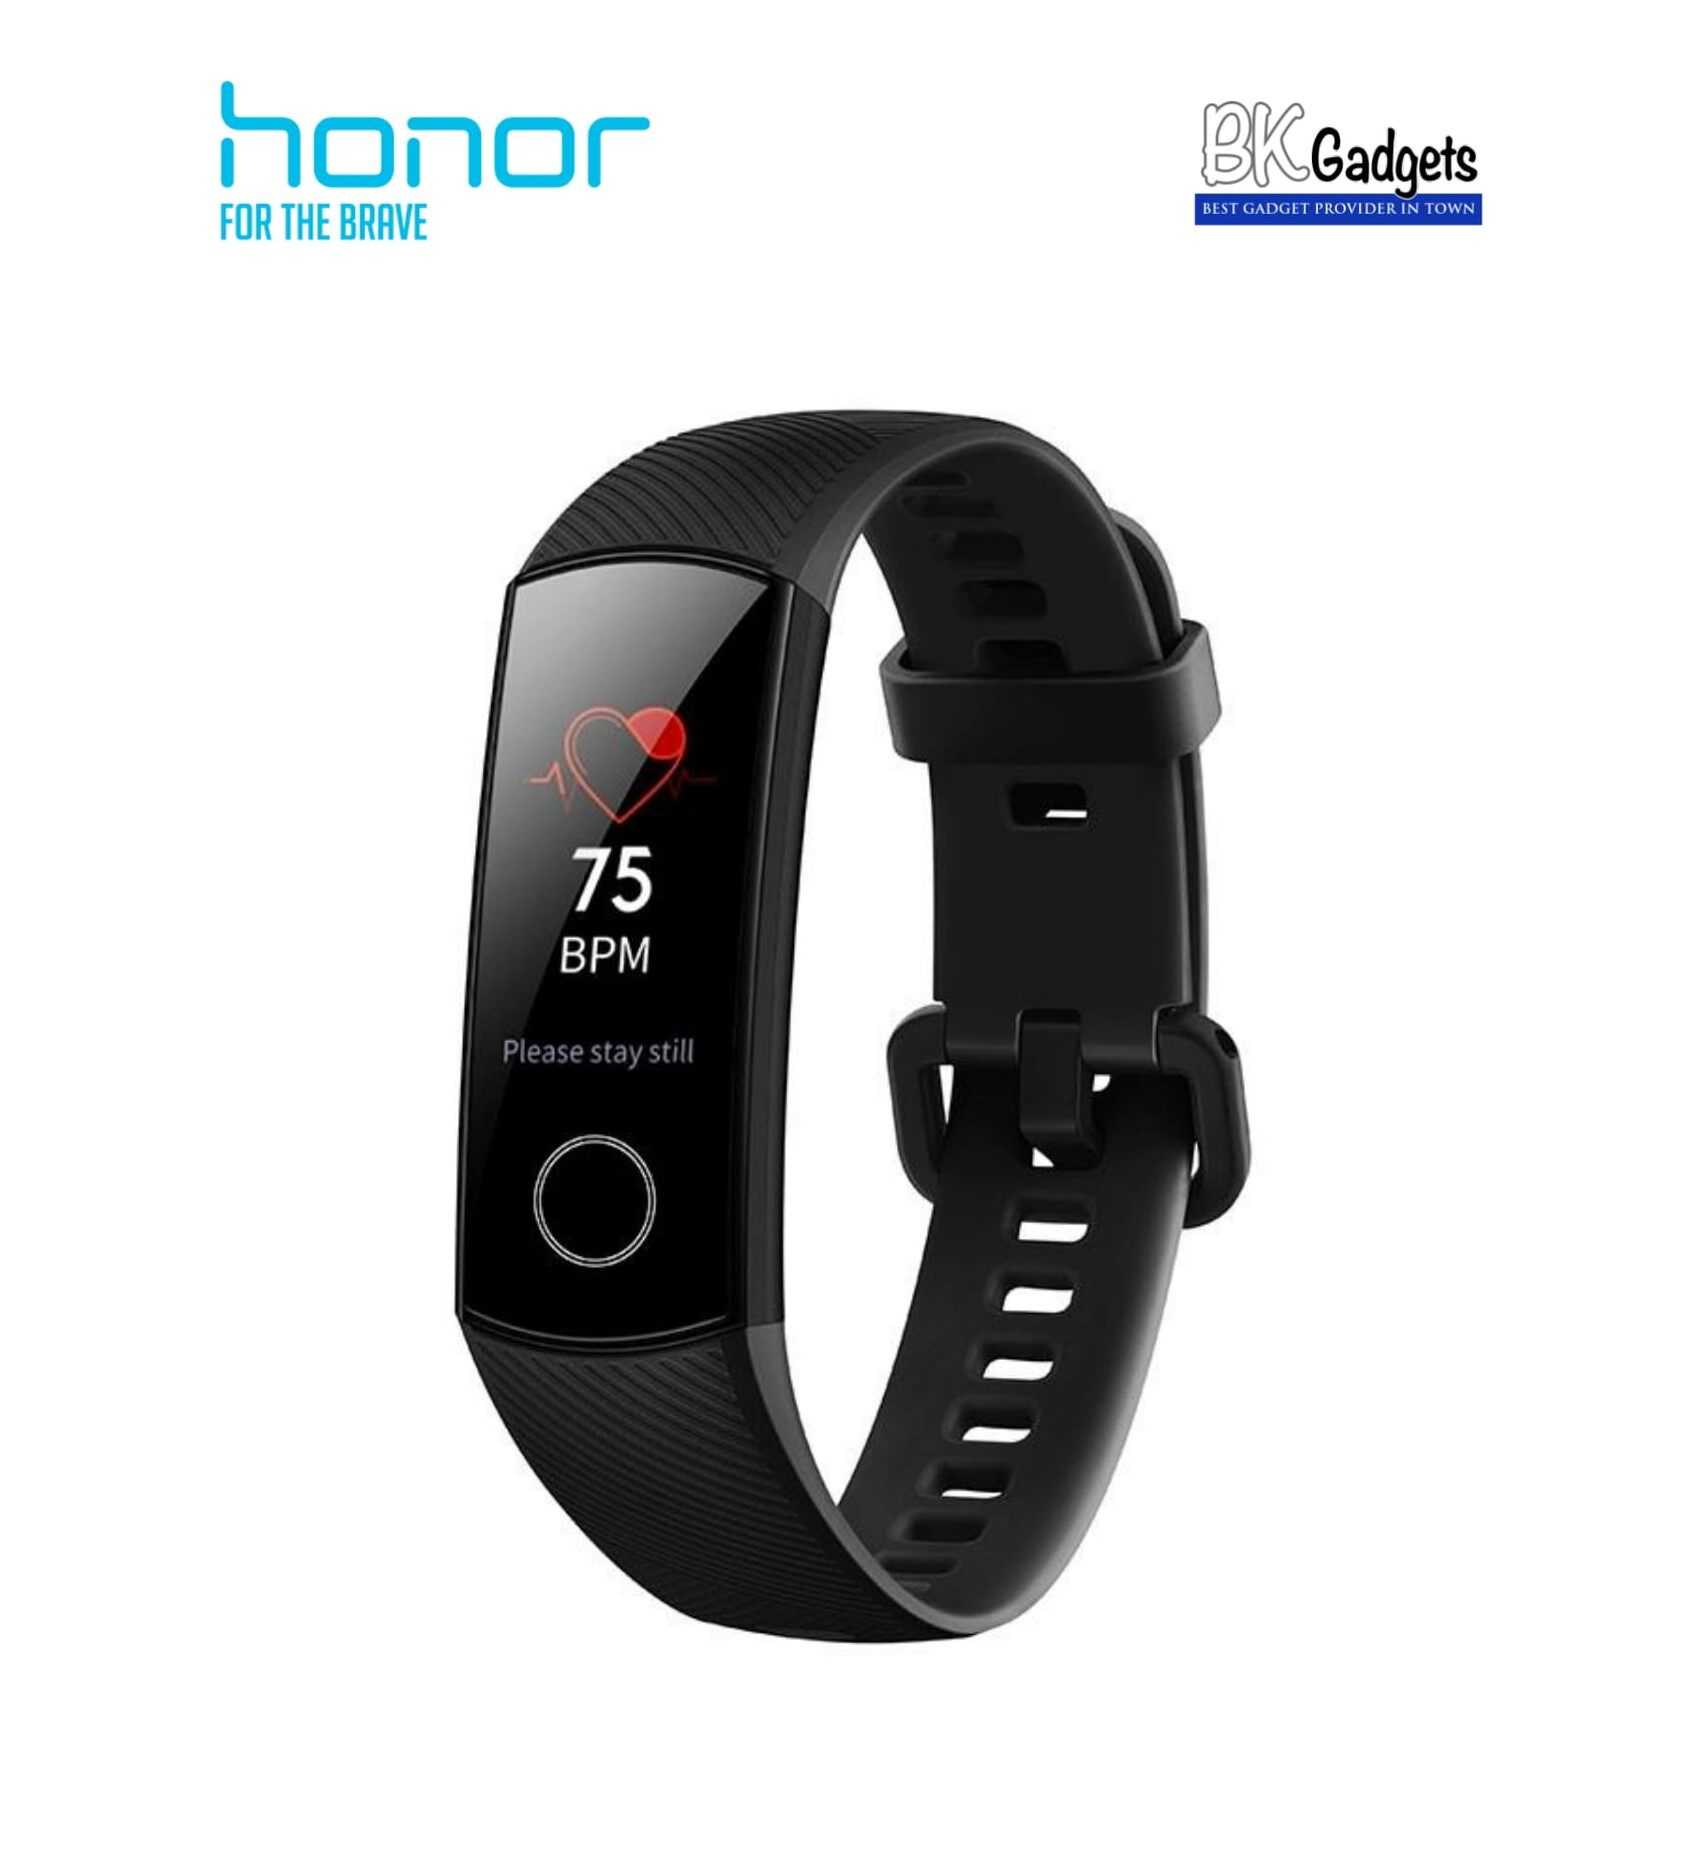 Honor BAND 4 AMOLED color screen Smart Wristband Wearable Fitness Tracker [ Meteorite Black ]